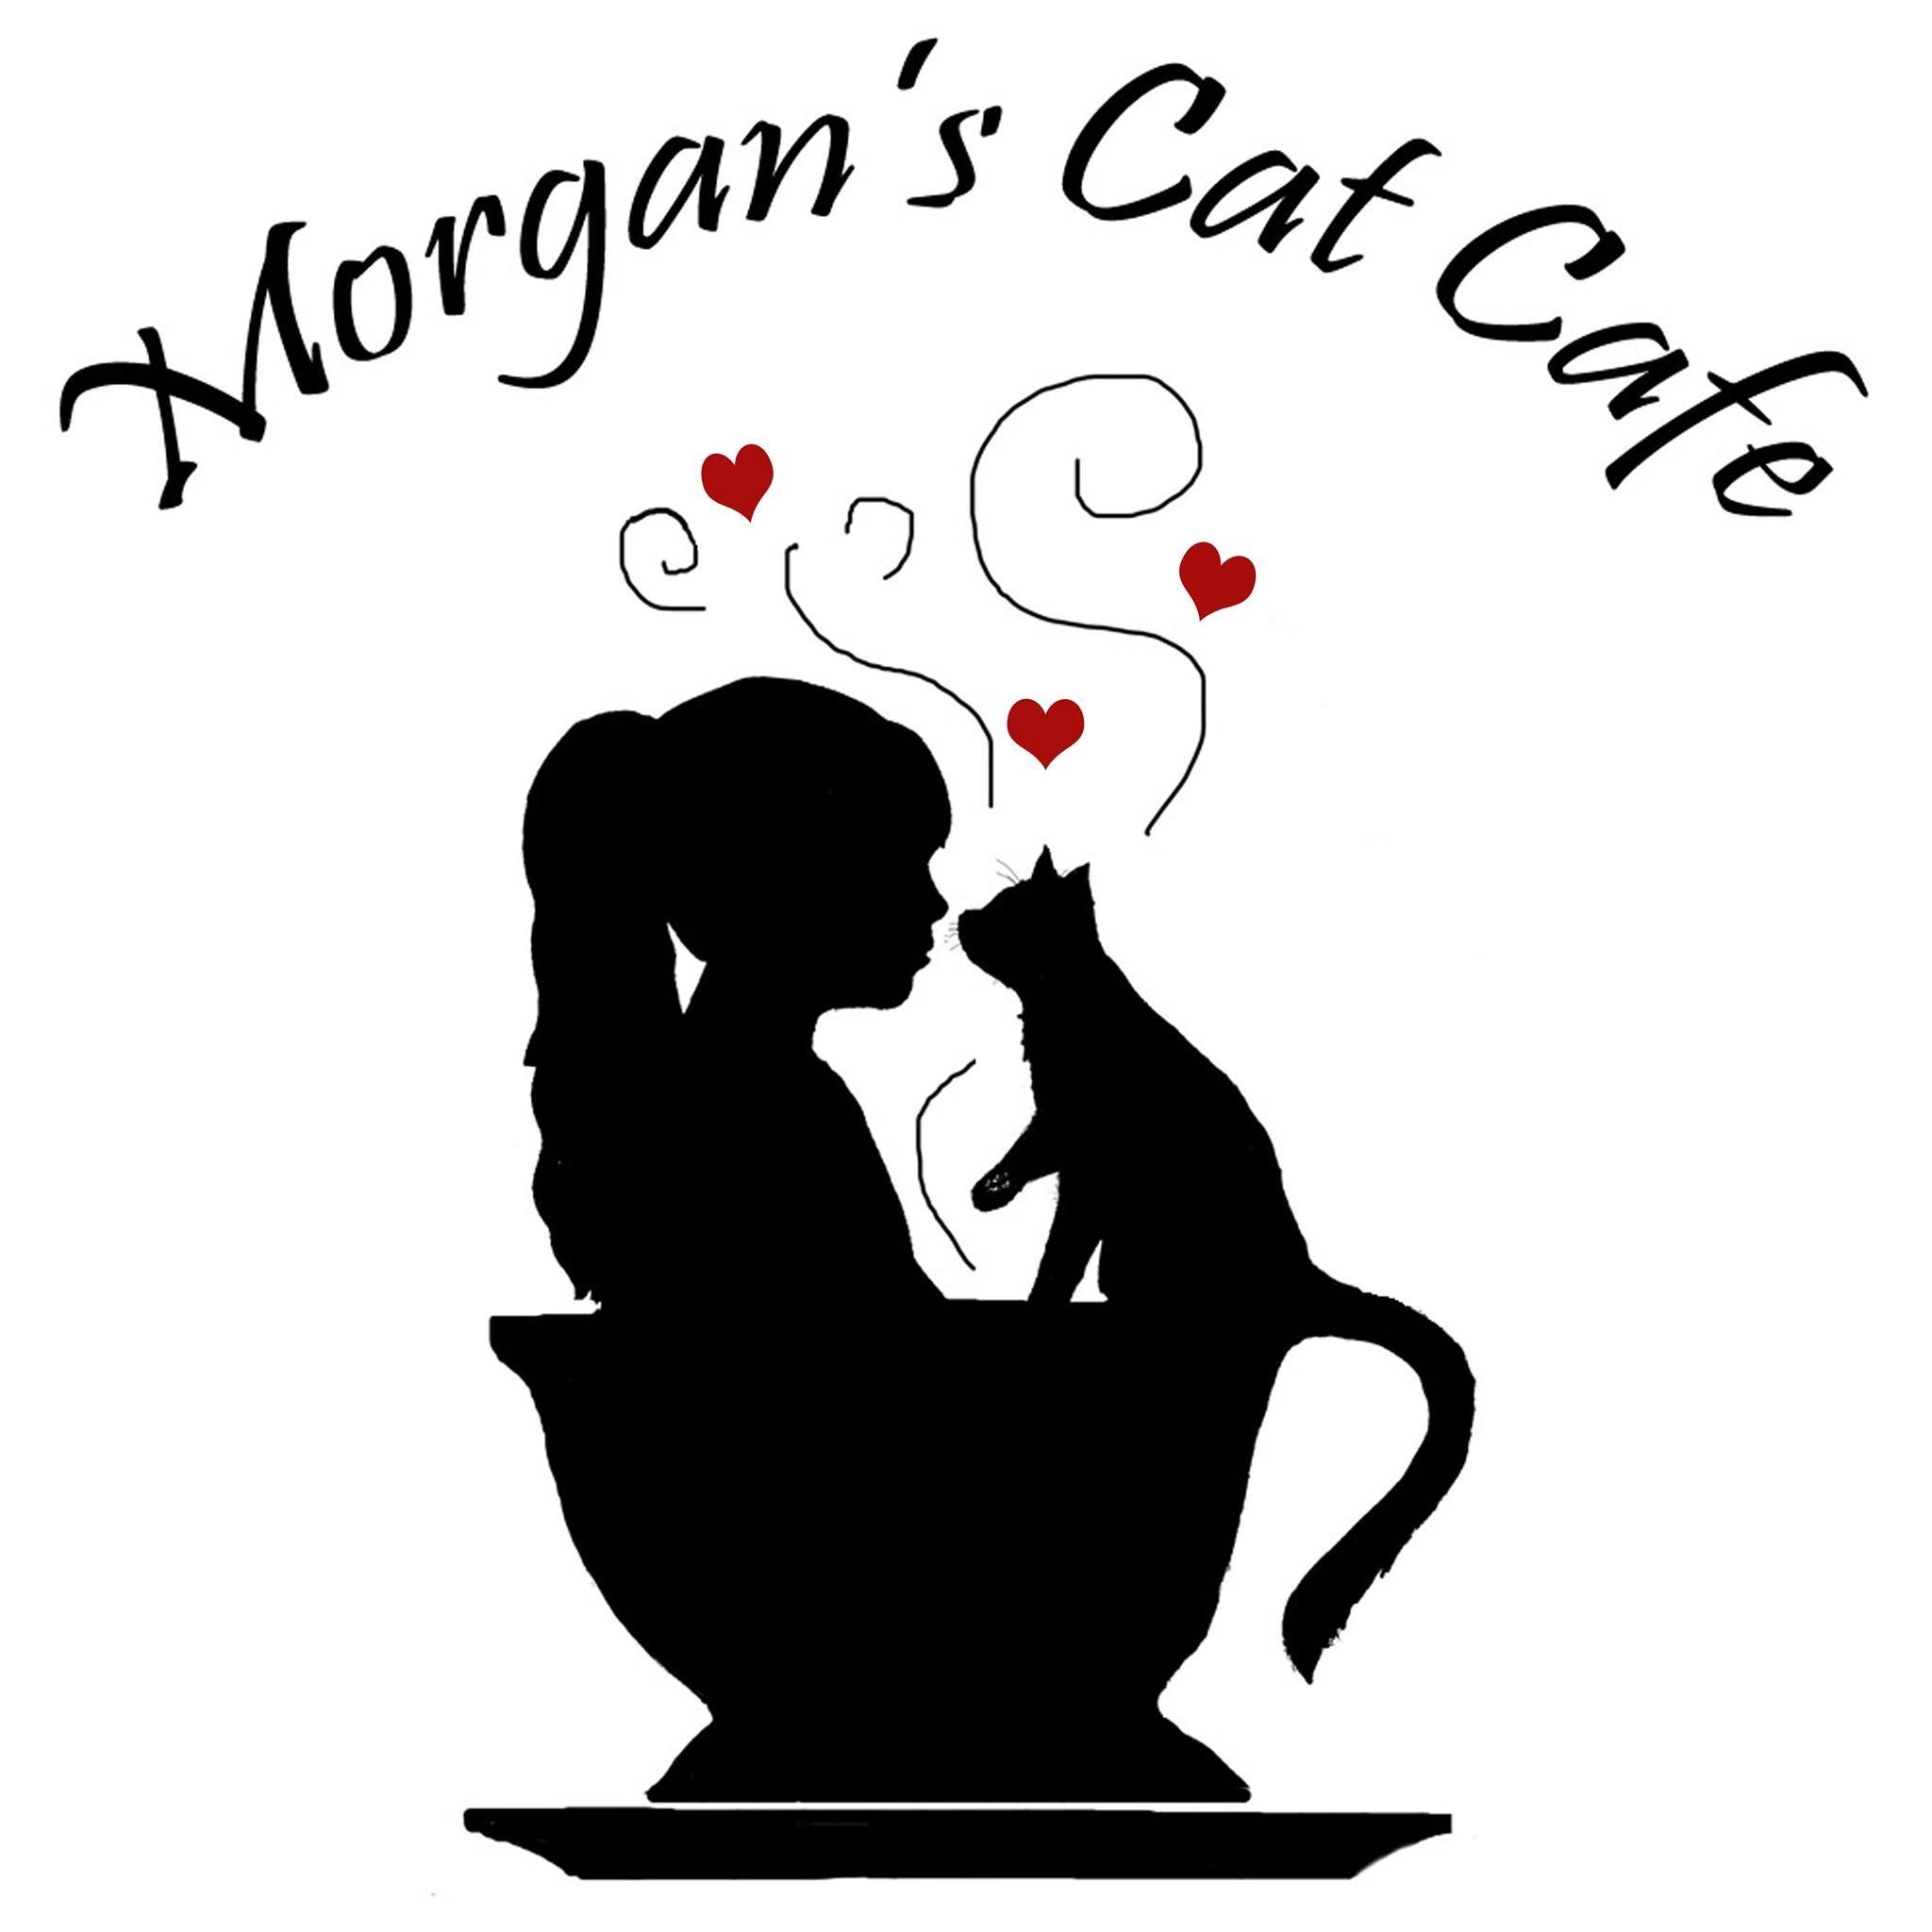 Morgans cat cafe